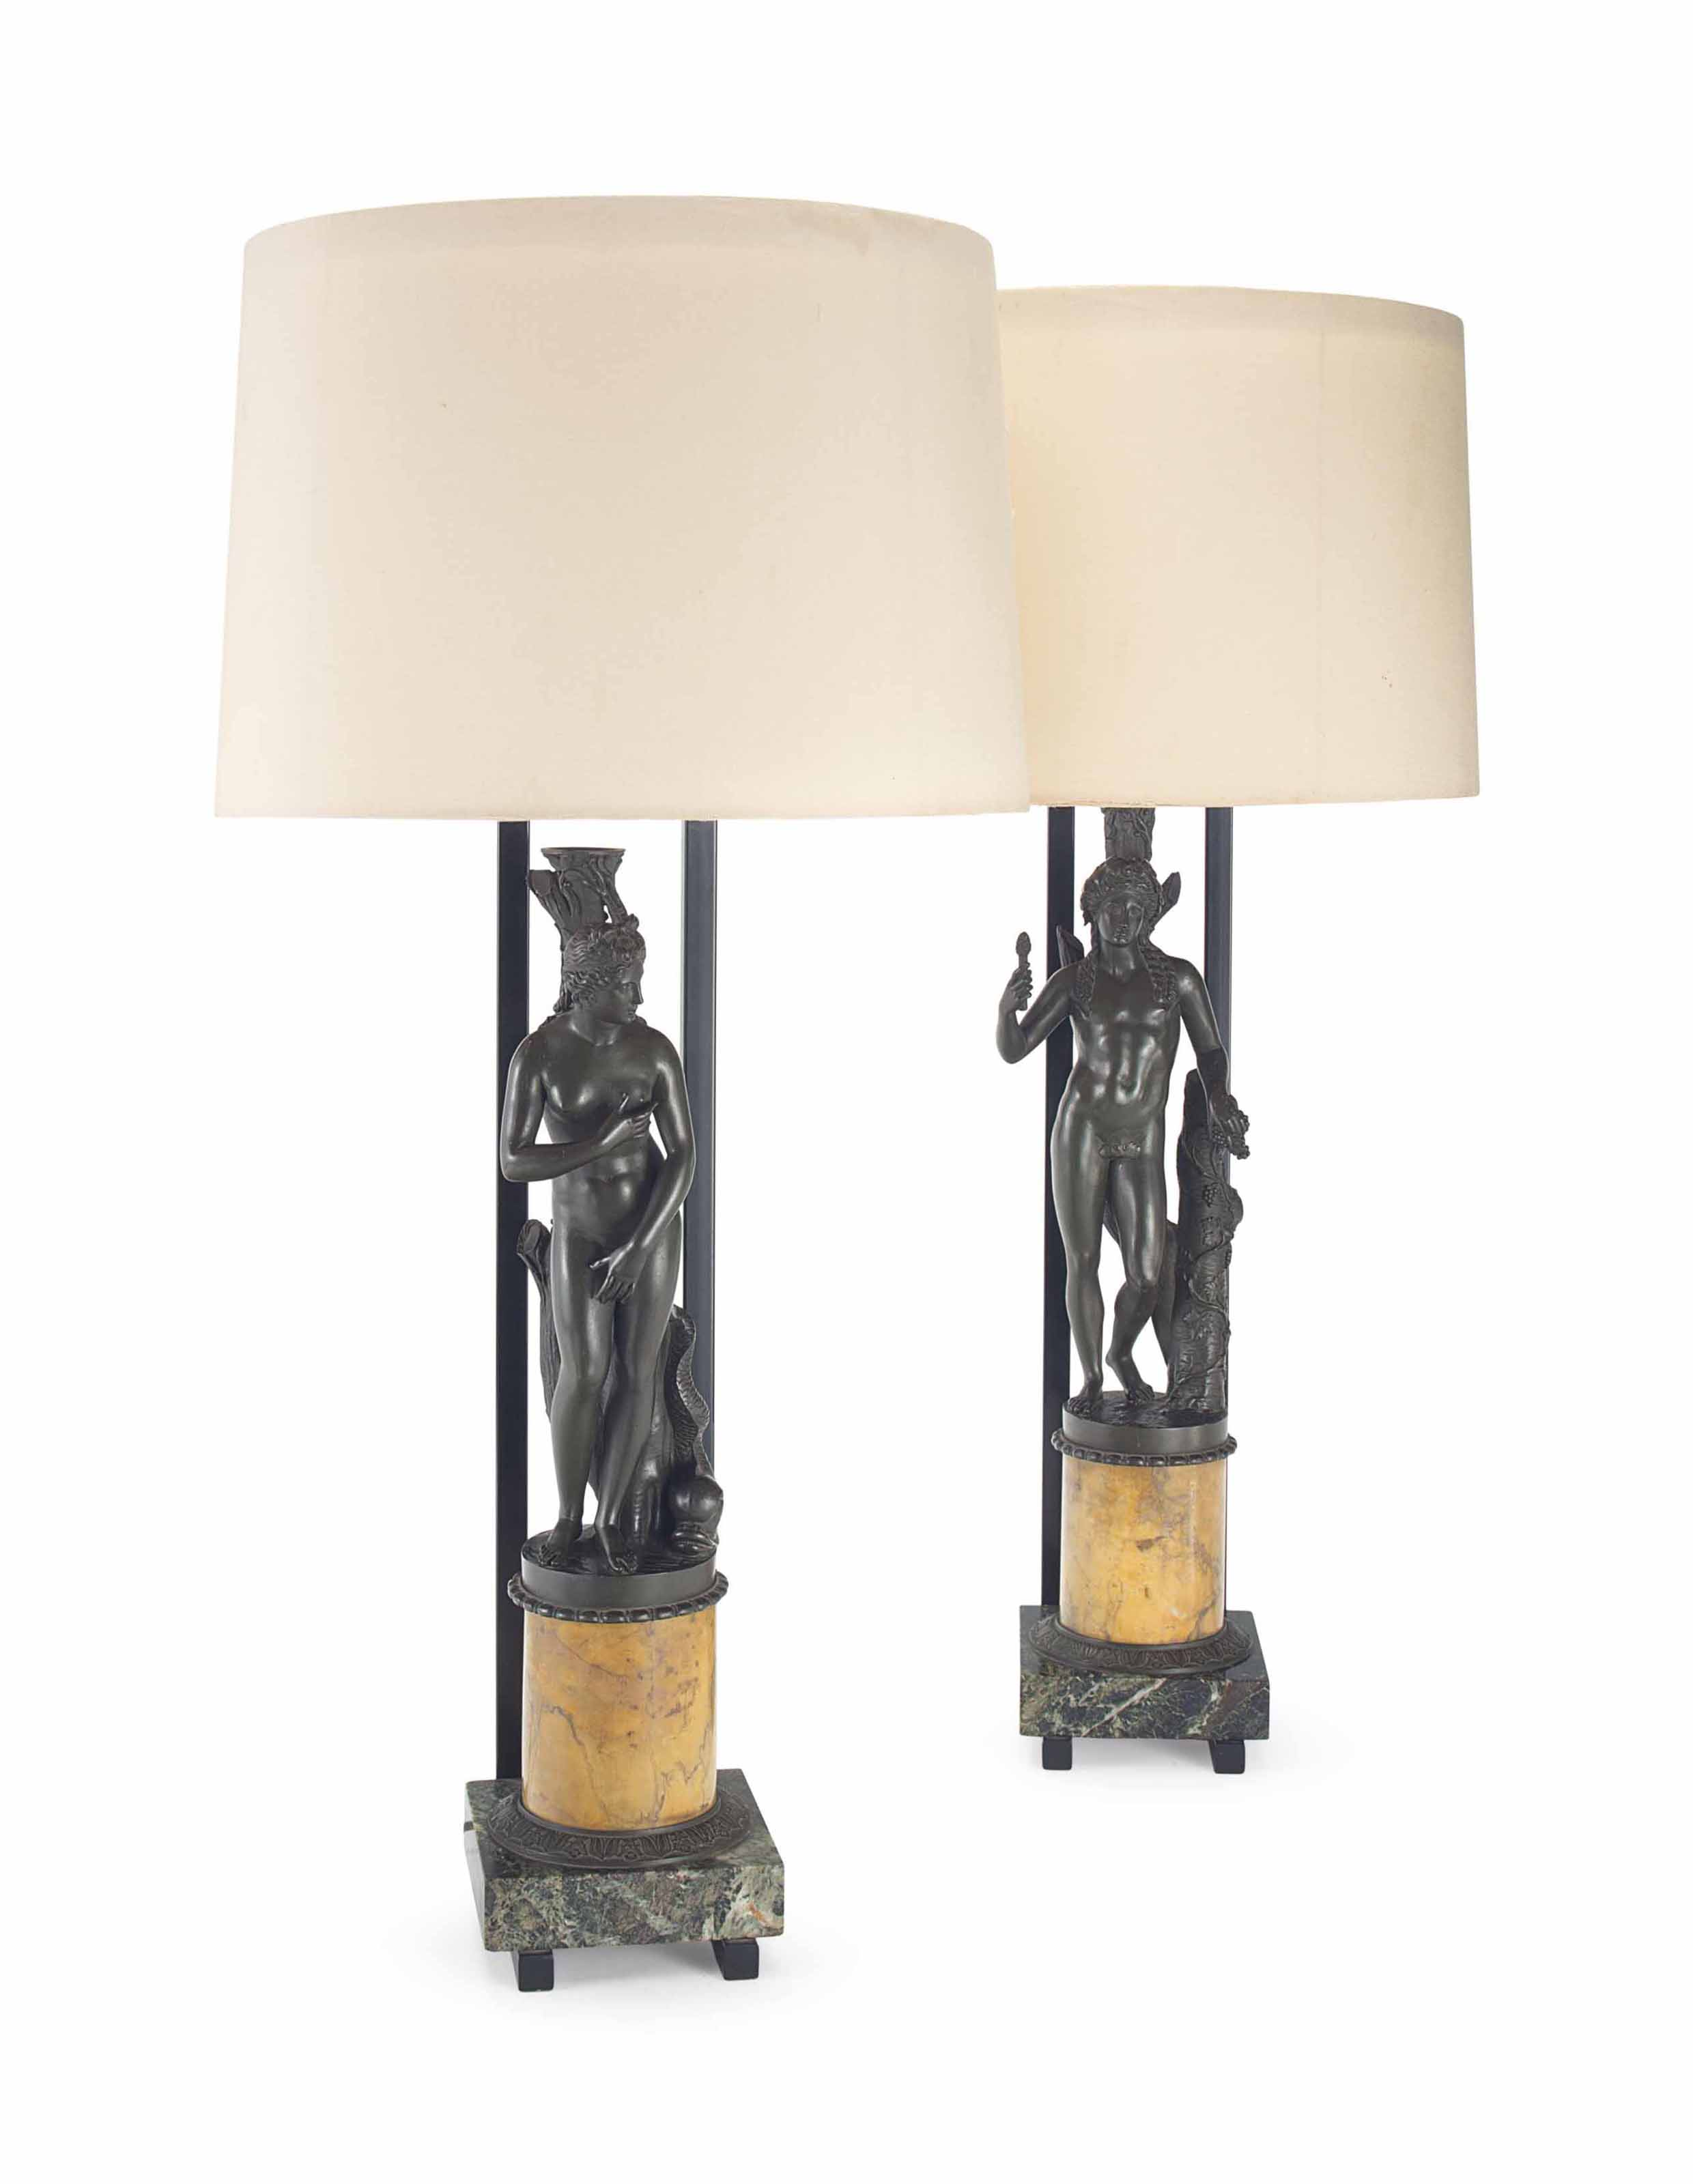 A PAIR OF FRENCH BRONZE AND MARBLE TABLE LAMPS